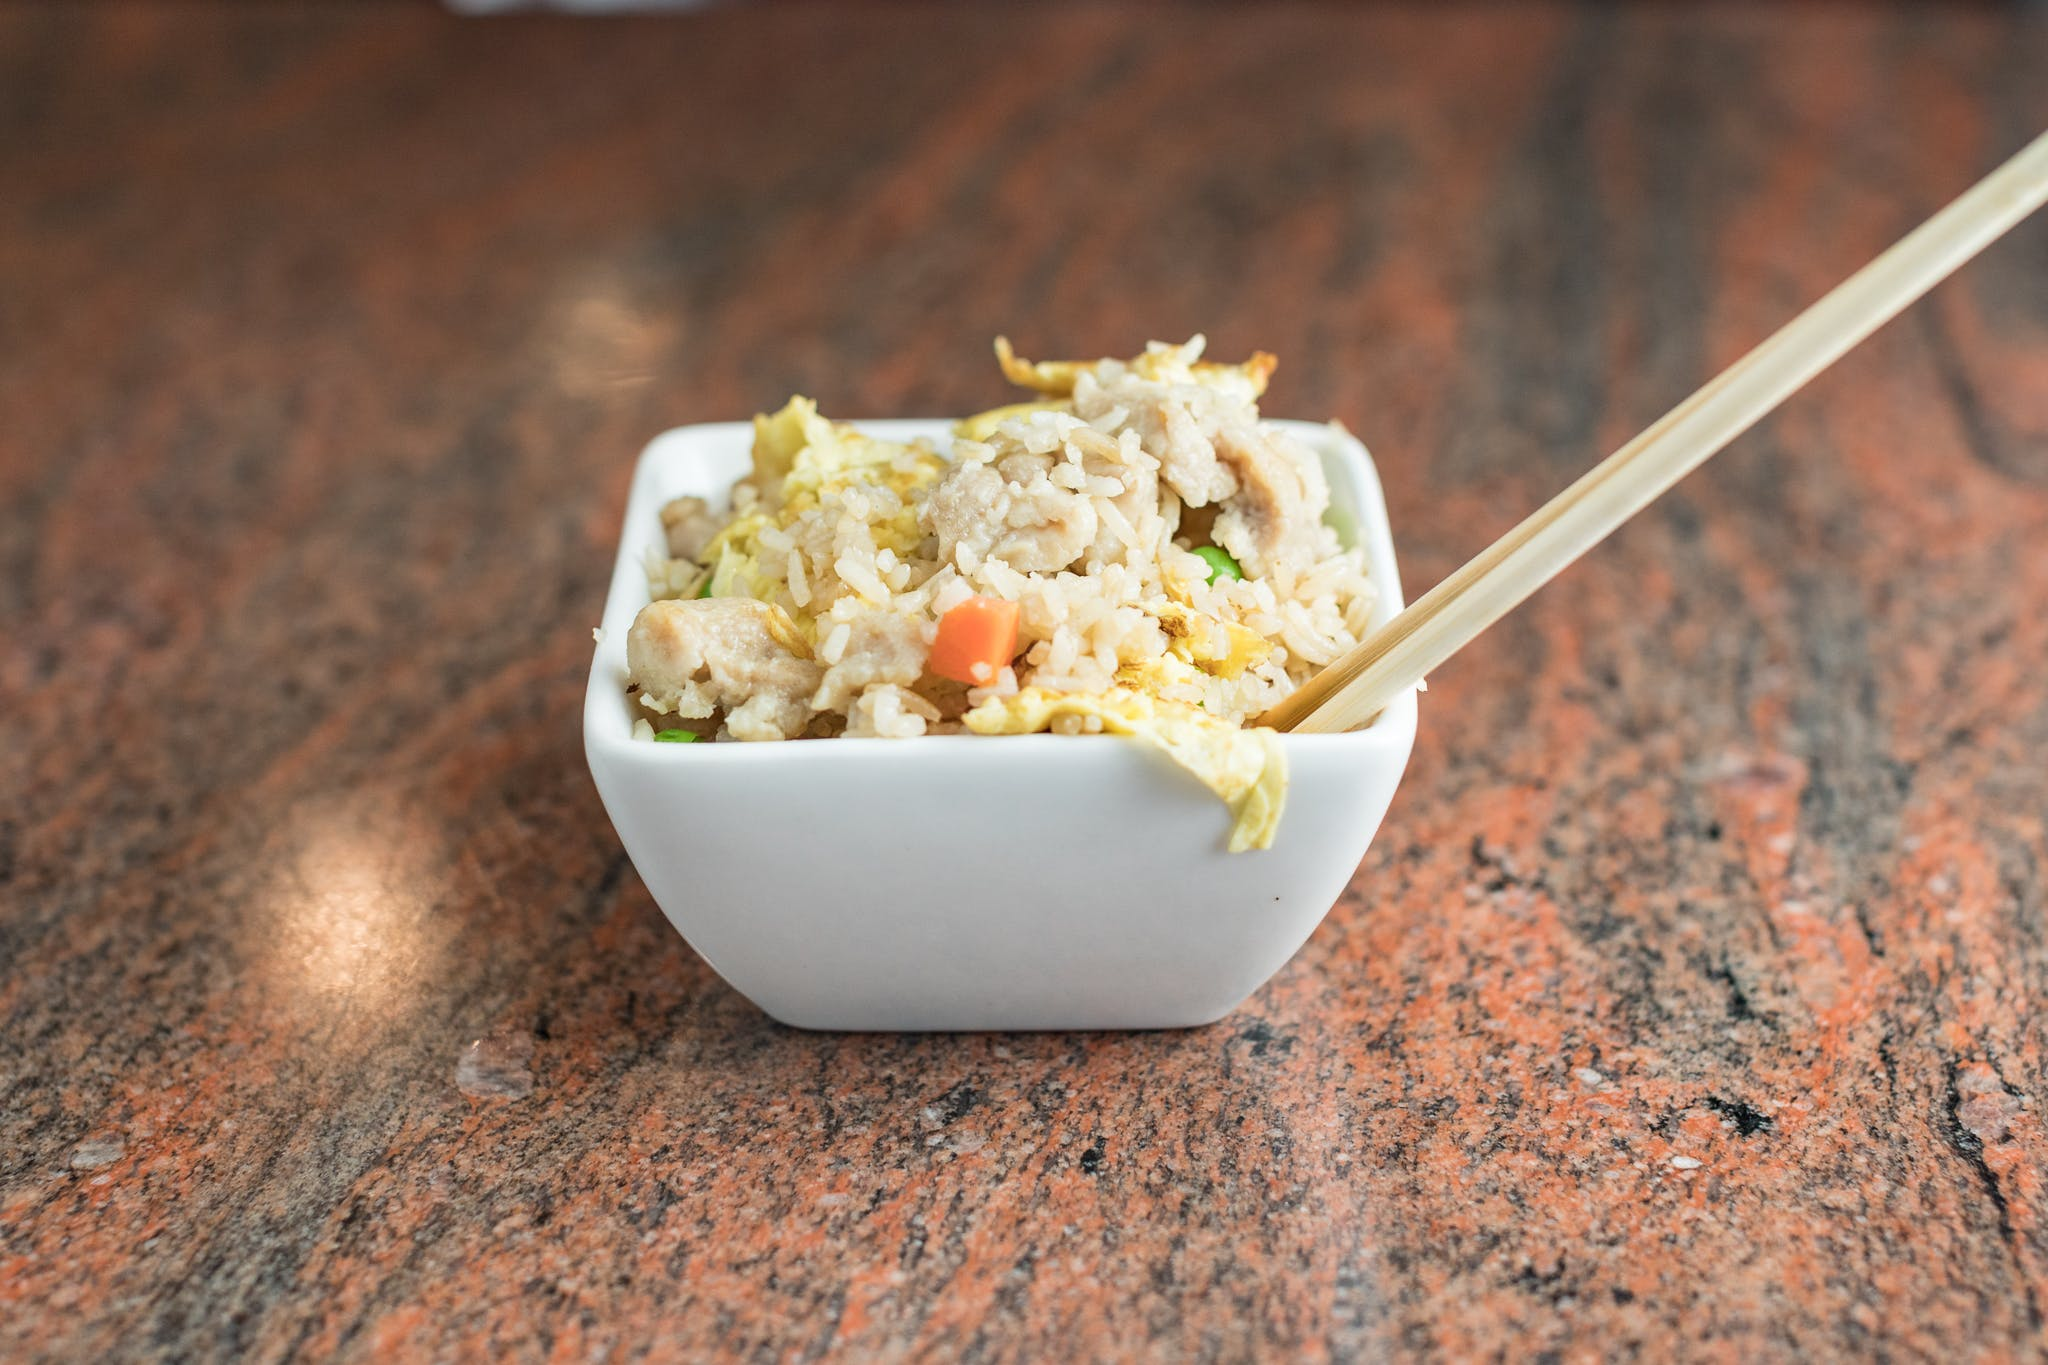 Vegetable Fried Rice from Shanghai Bistro in Eau Claire, WI